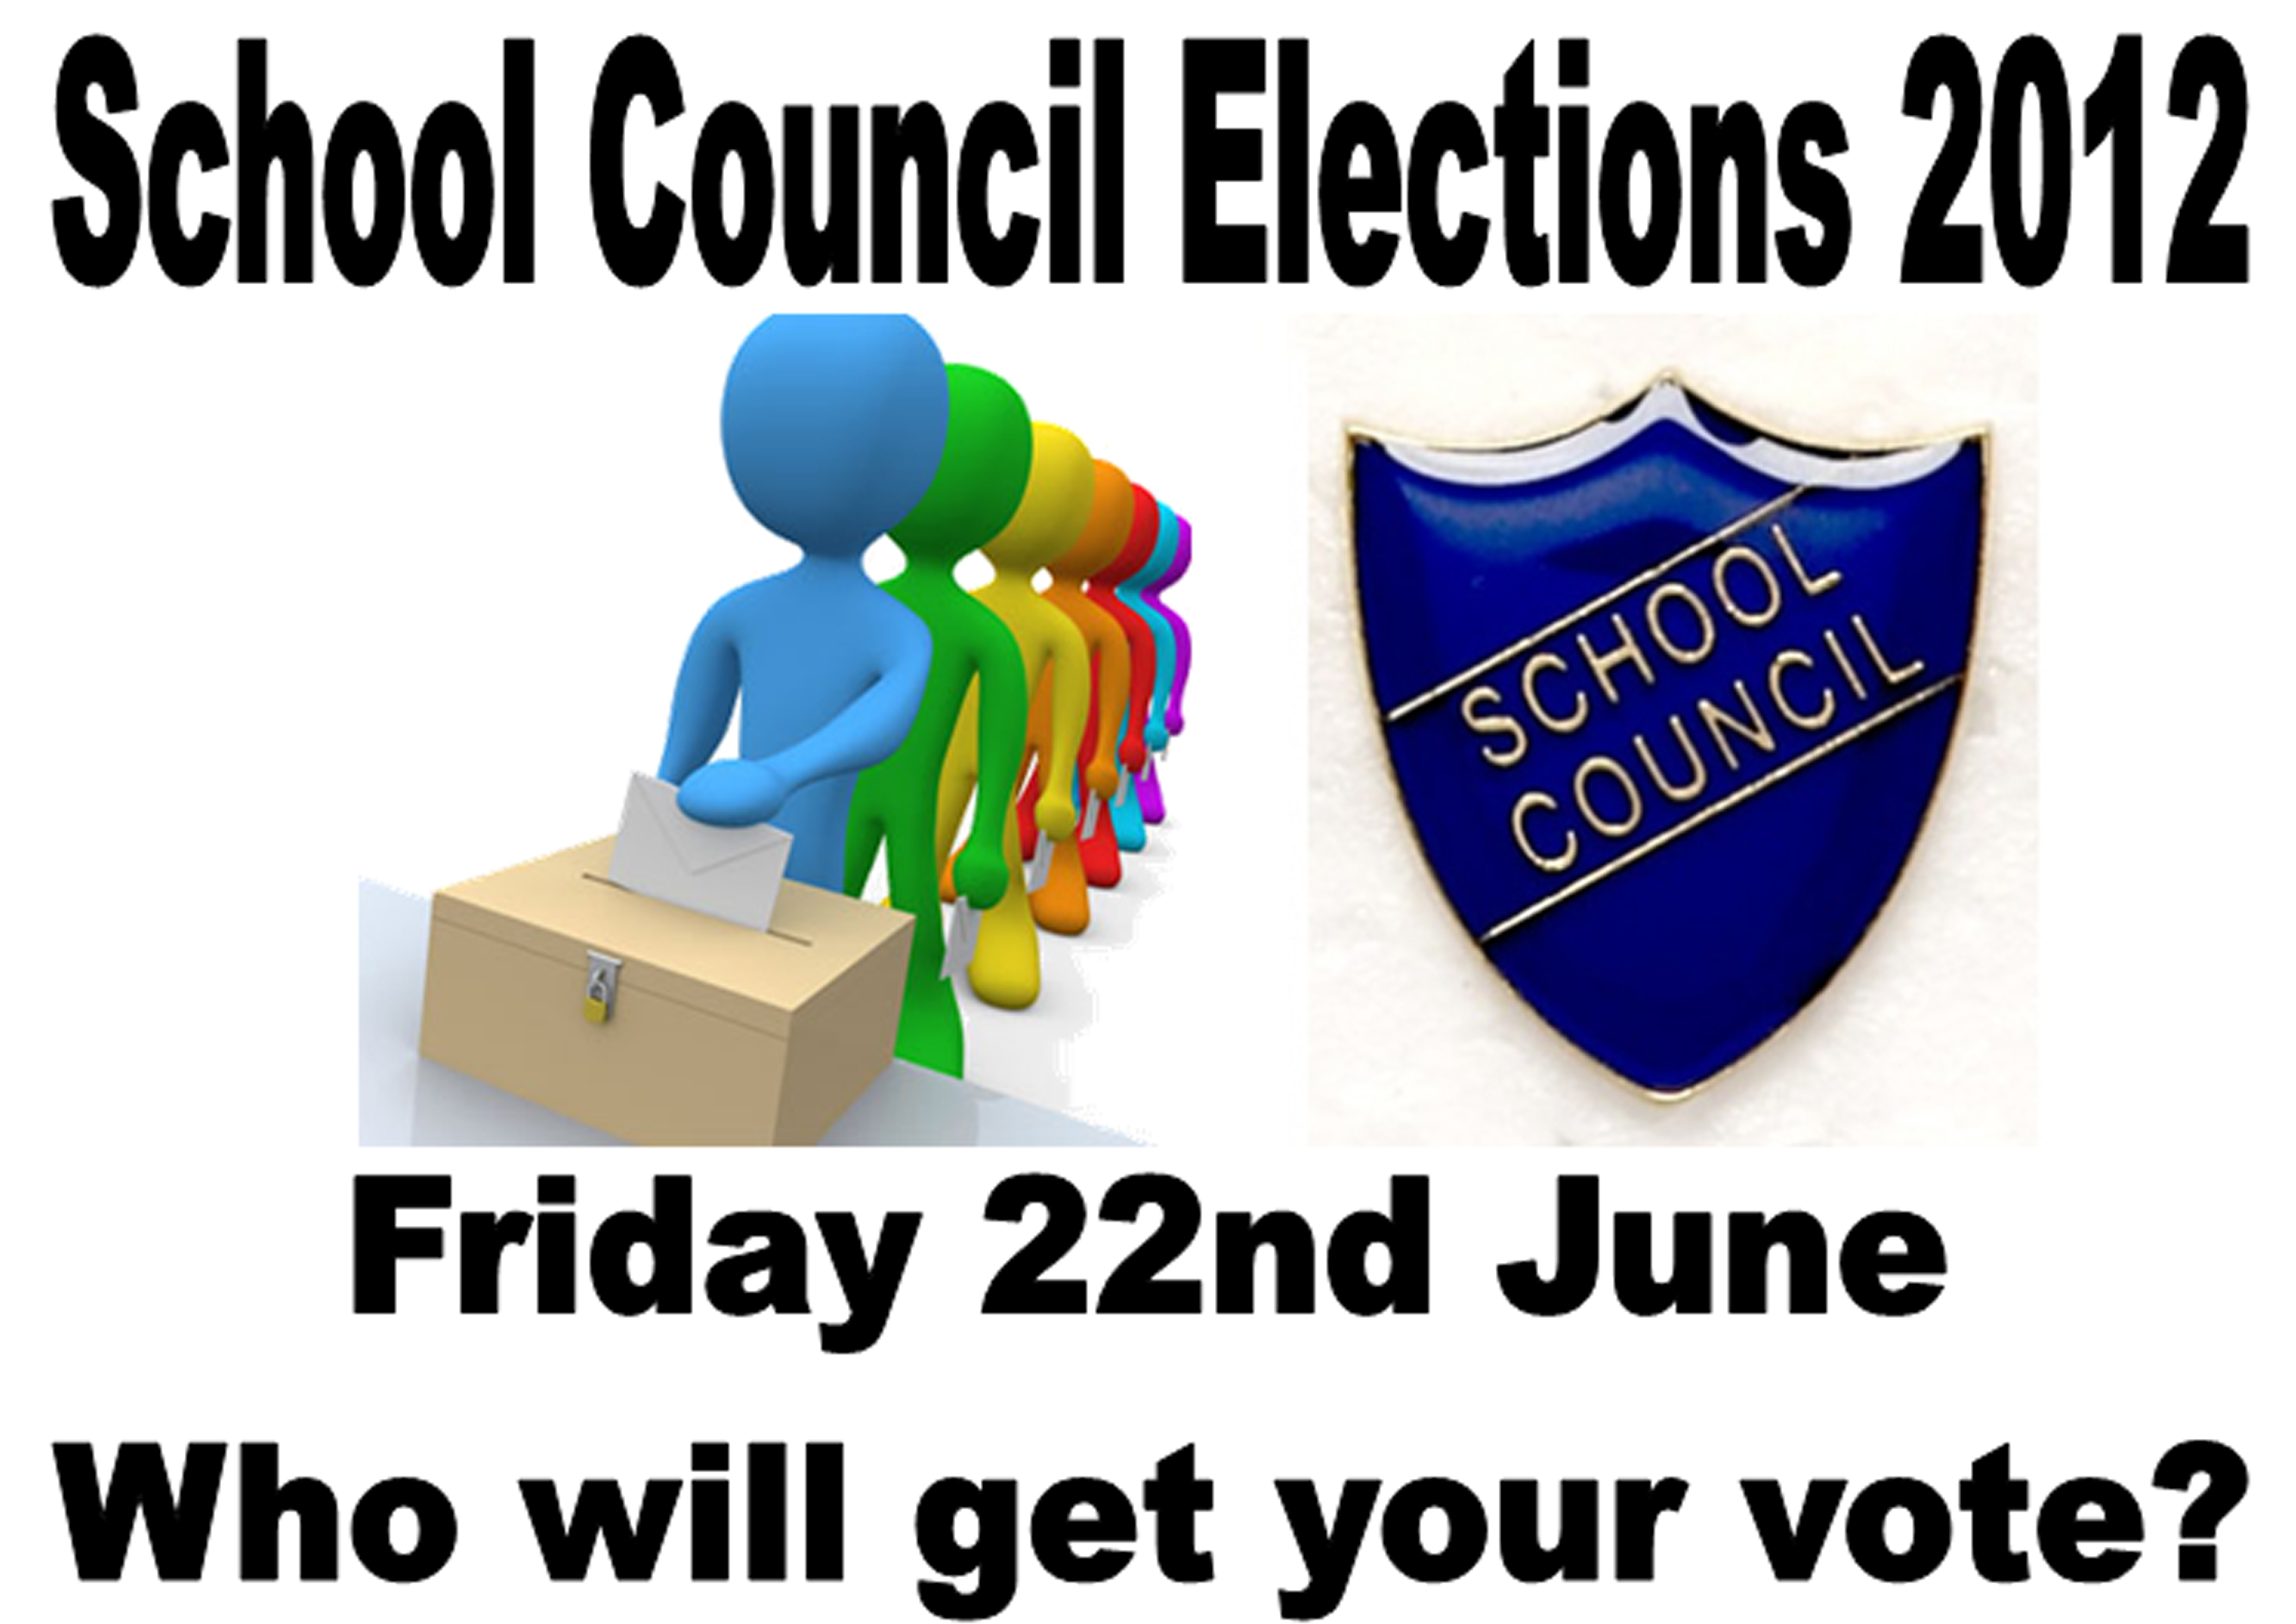 school elections Usually aimed at high school students and it comes close to making my blood boil  it is a  it is axiomatic that the winning candidate, again in an open and.